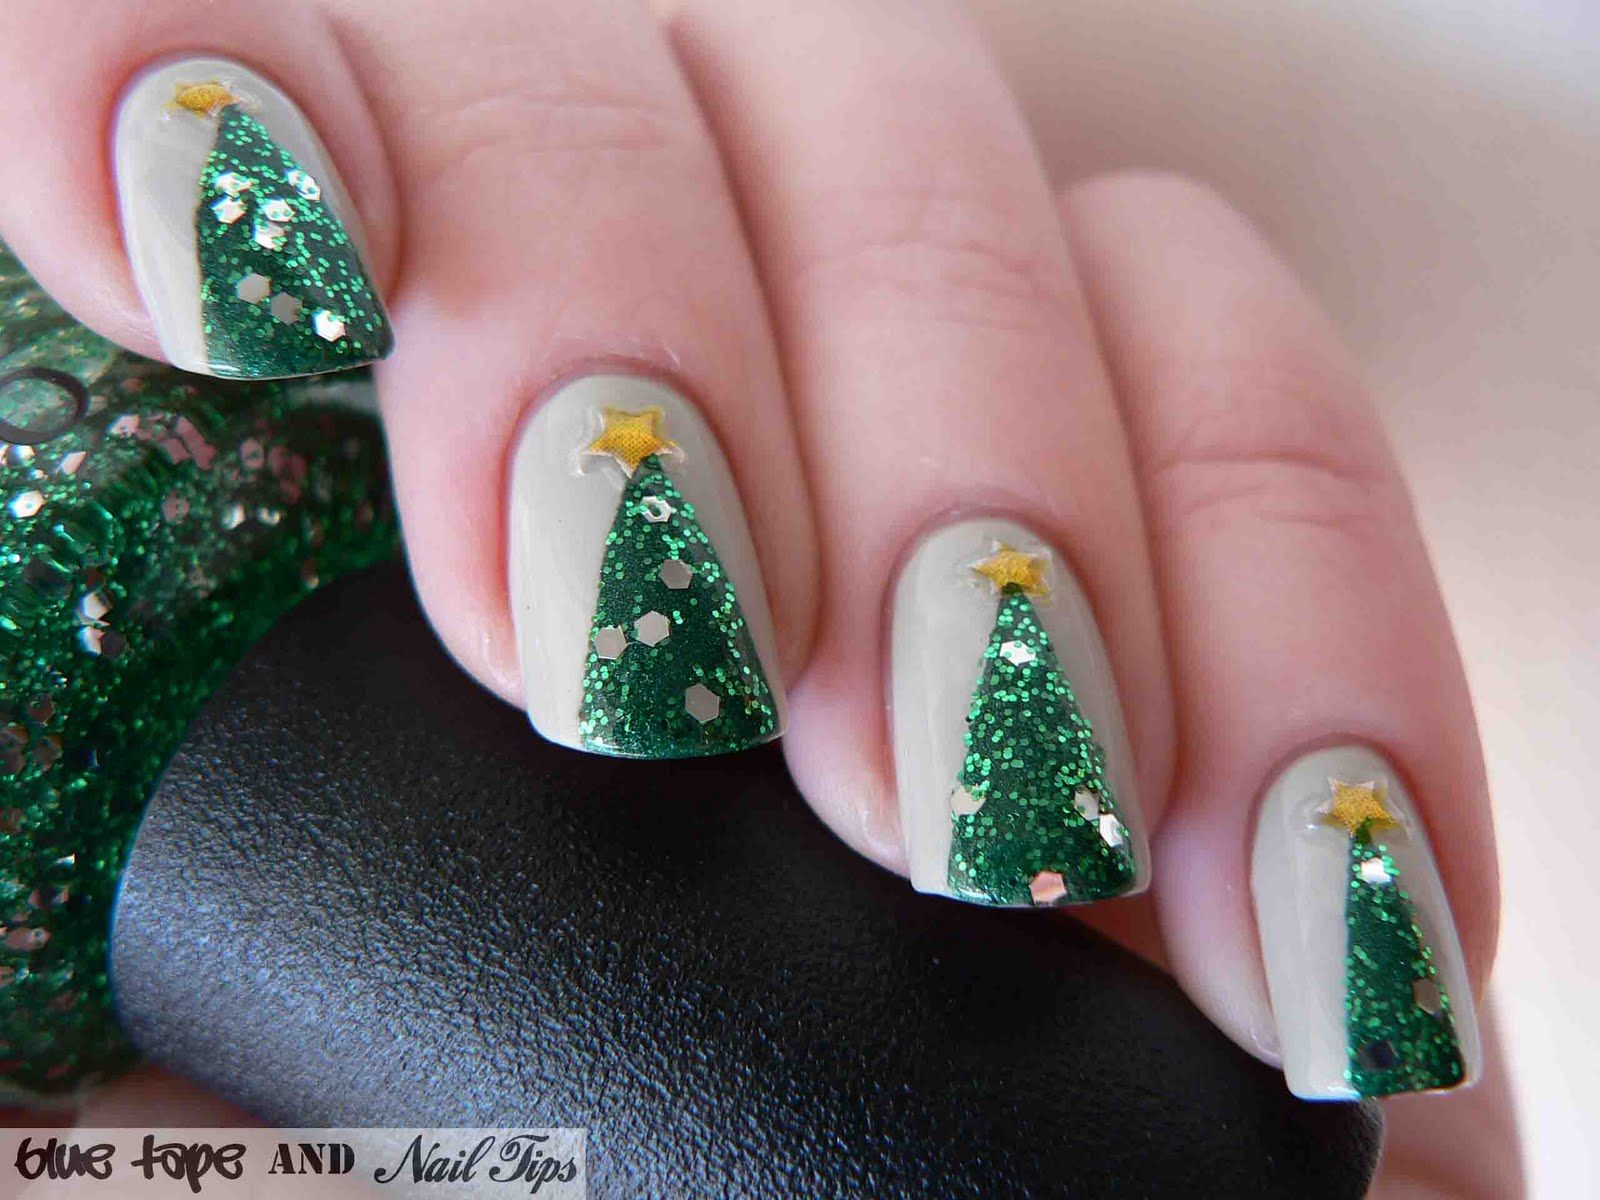 Blue Tape And Nail Tips Easy Christmas Trees Christmas Nails Easy Christmas Tree Nails Christmas Nails Diy